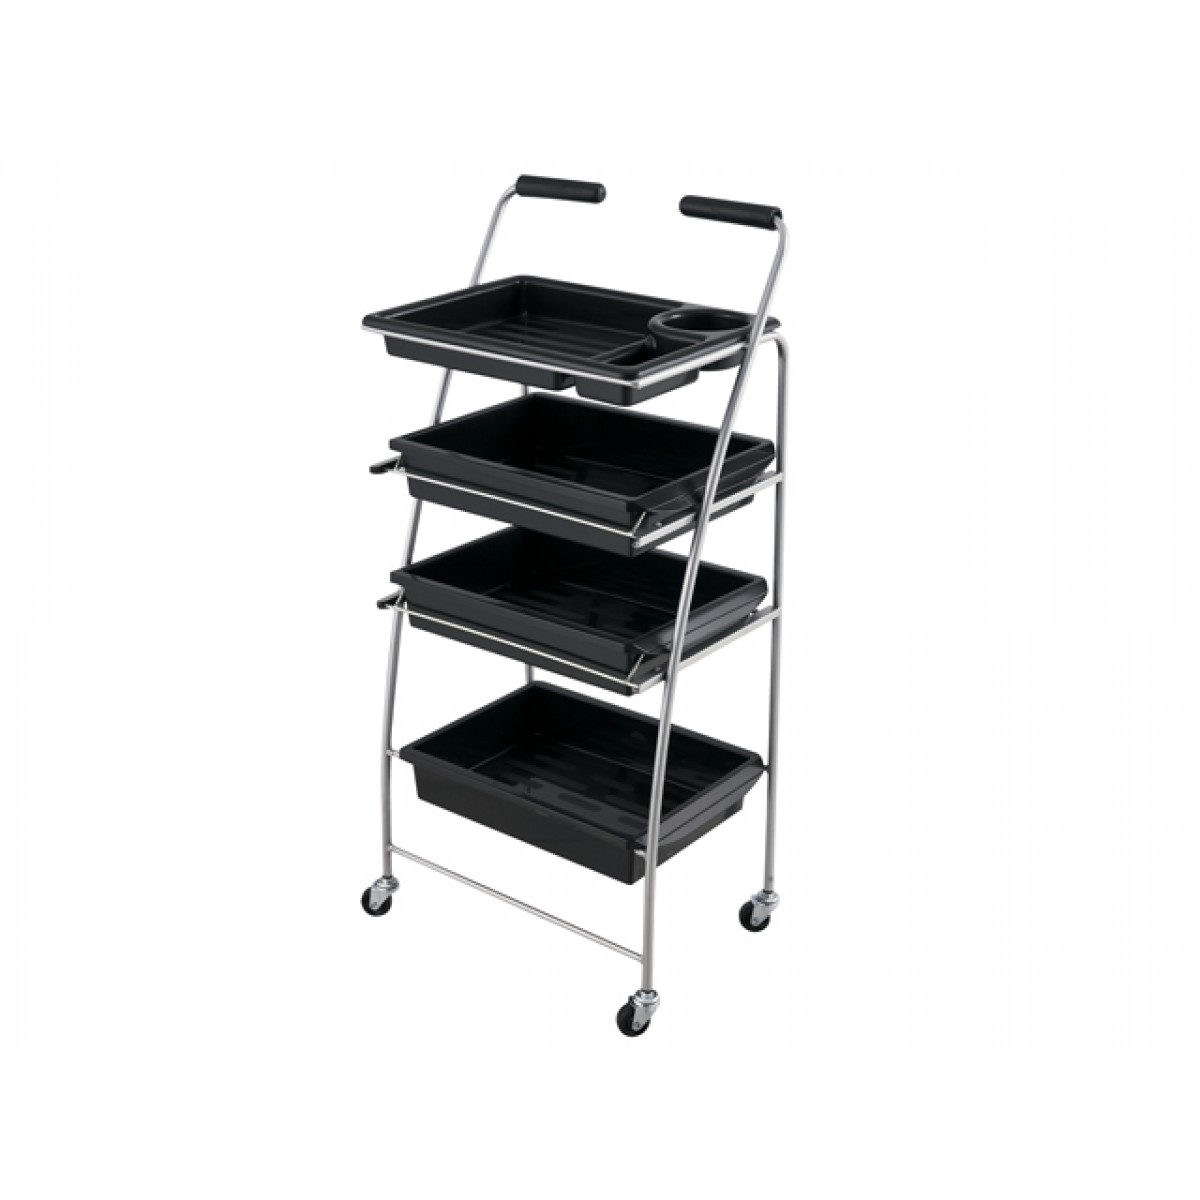 """BARU"" Multi-purpose Salon Utility Tray Cart"